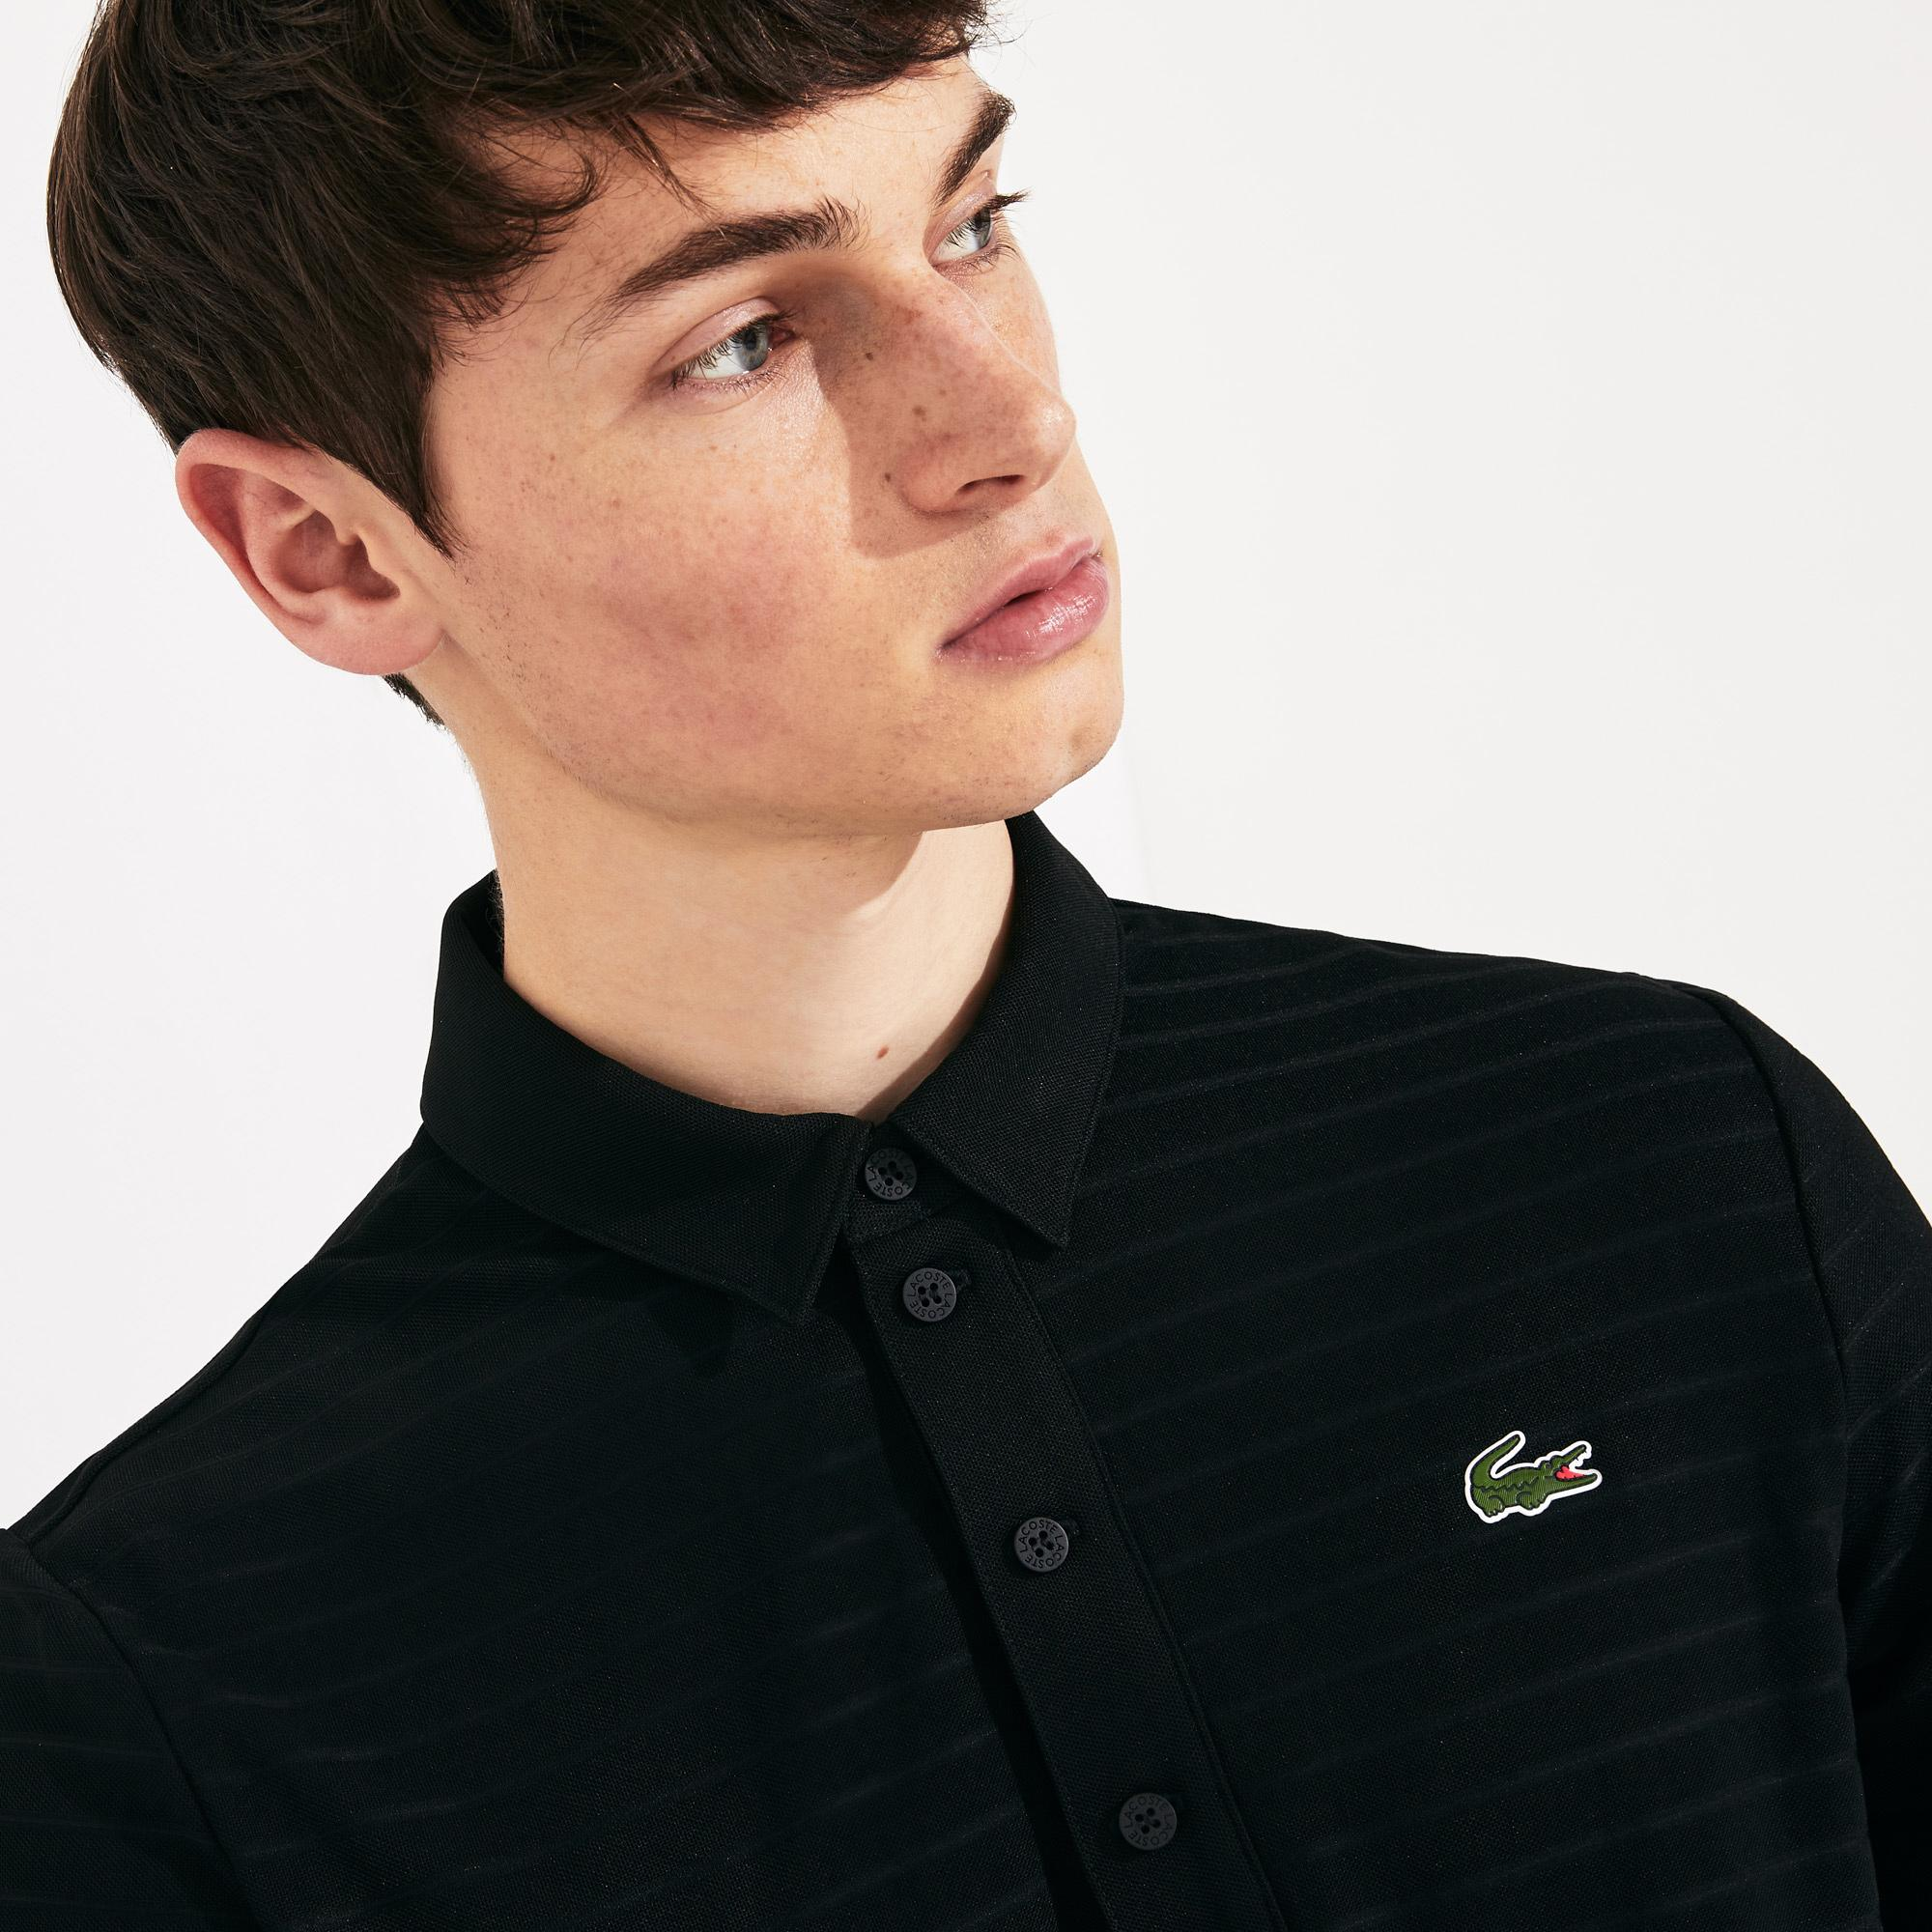 Lacoste Men's Sport Textured Breathable Golf Polo Shirt